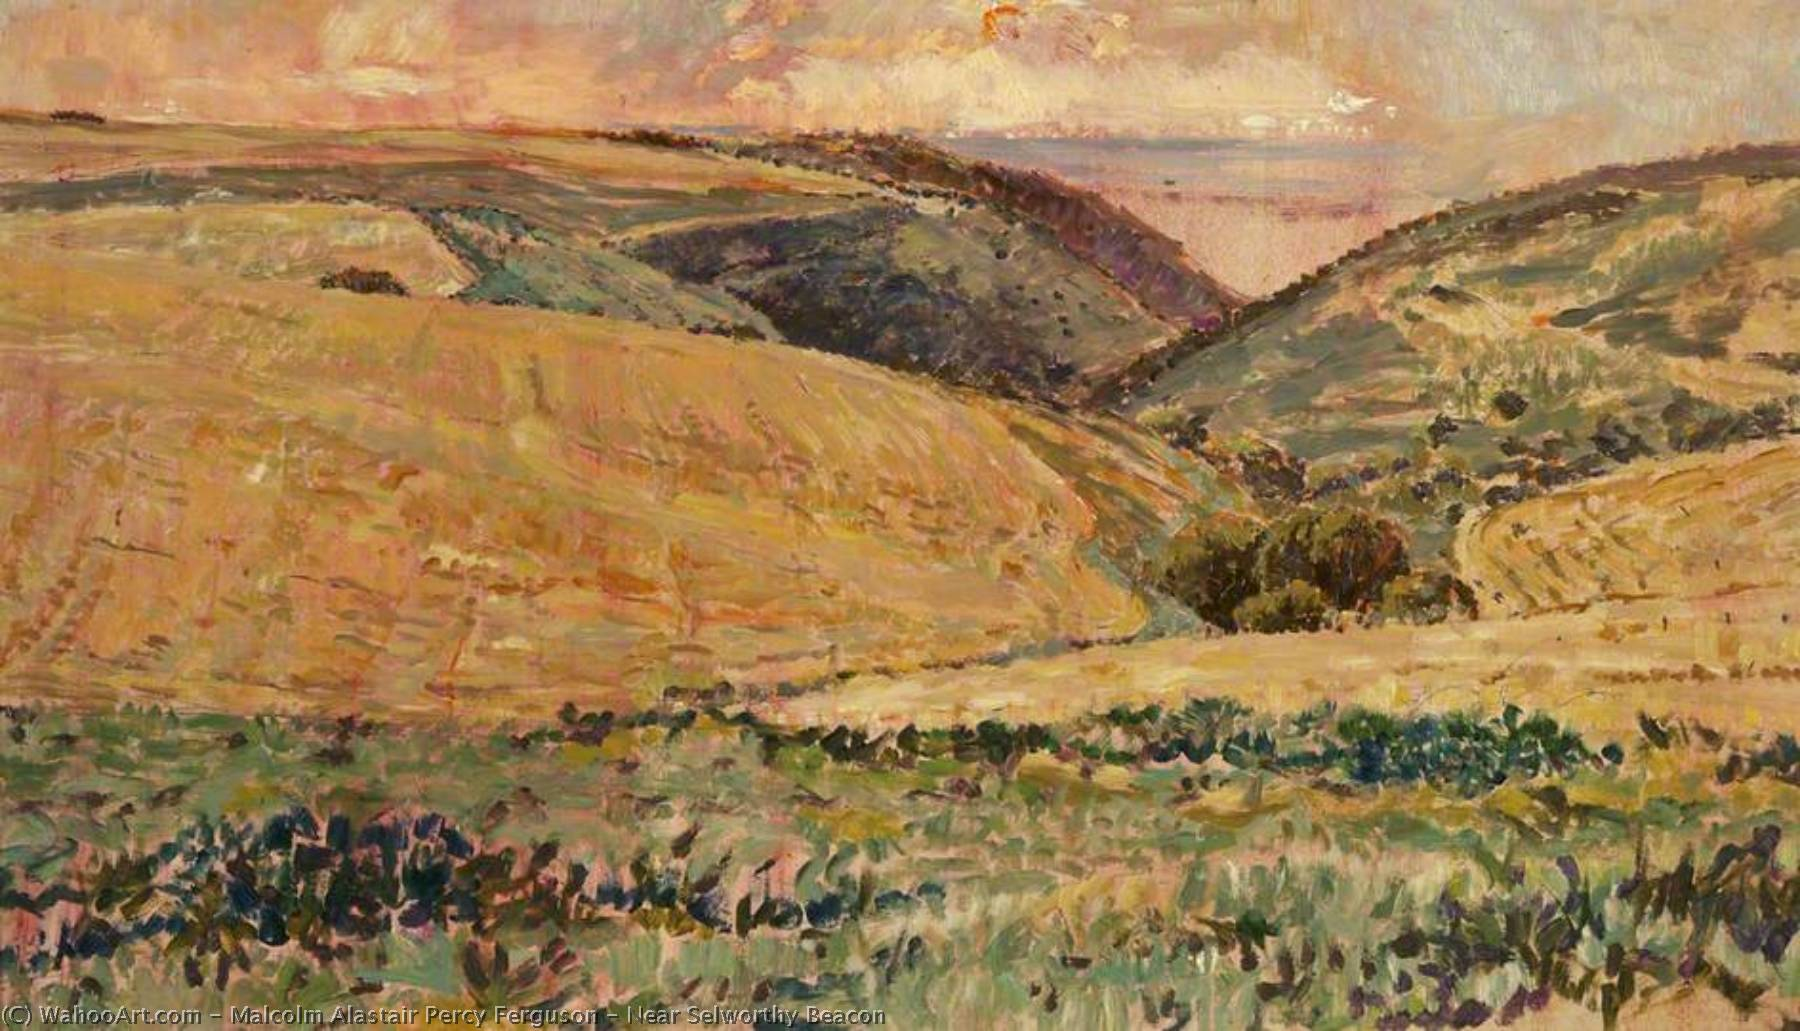 Wikioo.org - The Encyclopedia of Fine Arts - Painting, Artwork by Malcolm Alastair Percy Ferguson - Near Selworthy Beacon